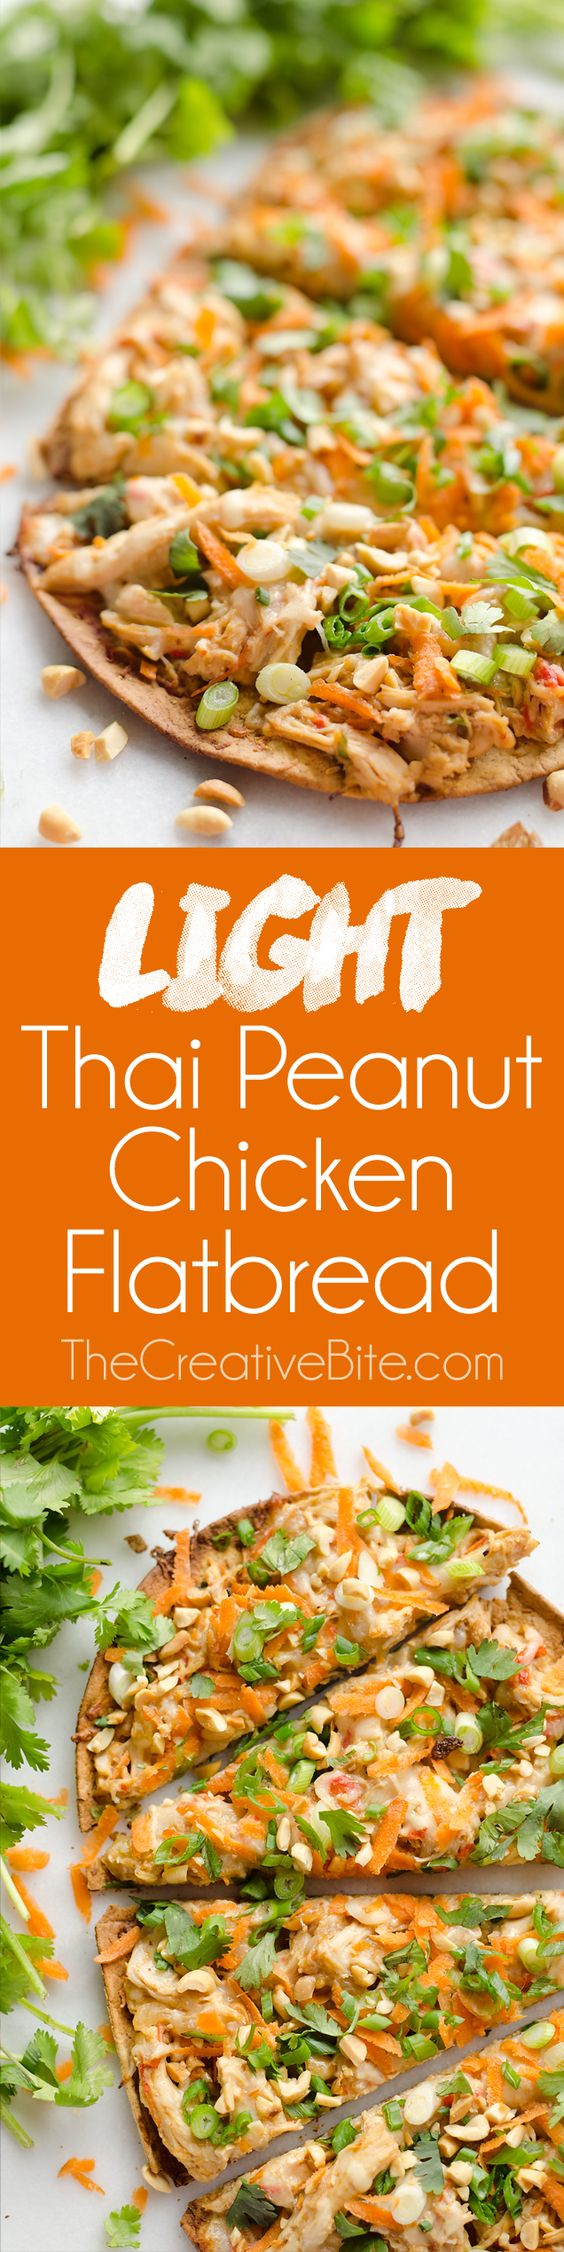 Chicken flatbread, Thai peanut chicken and Peanut chicken on Pinterest